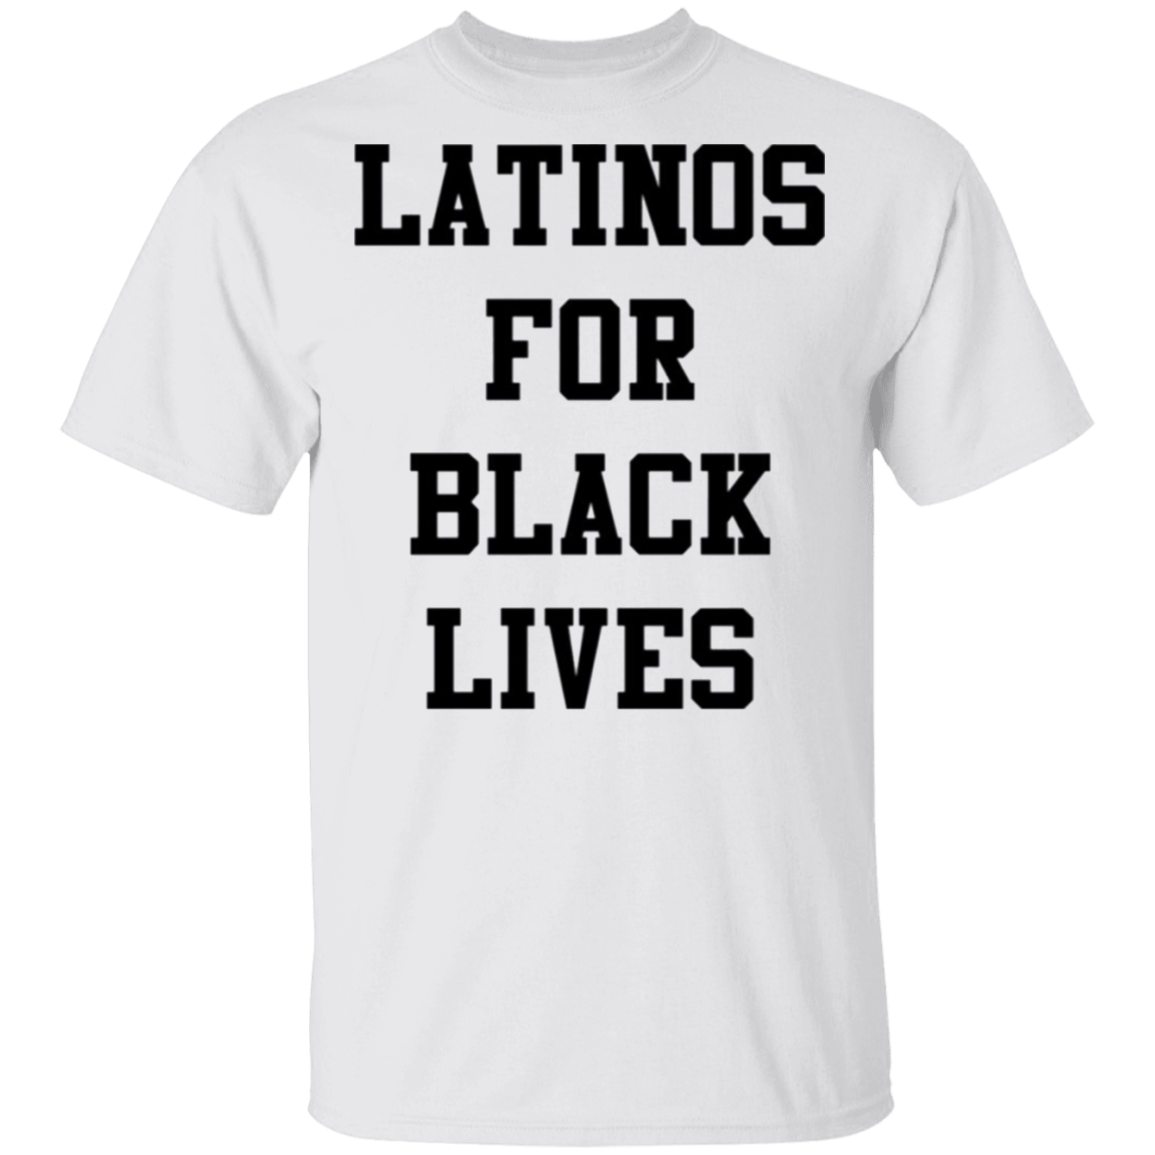 Latinos For Black Lives T-Shirt, Stop Killing Black People Protest T-Shirt